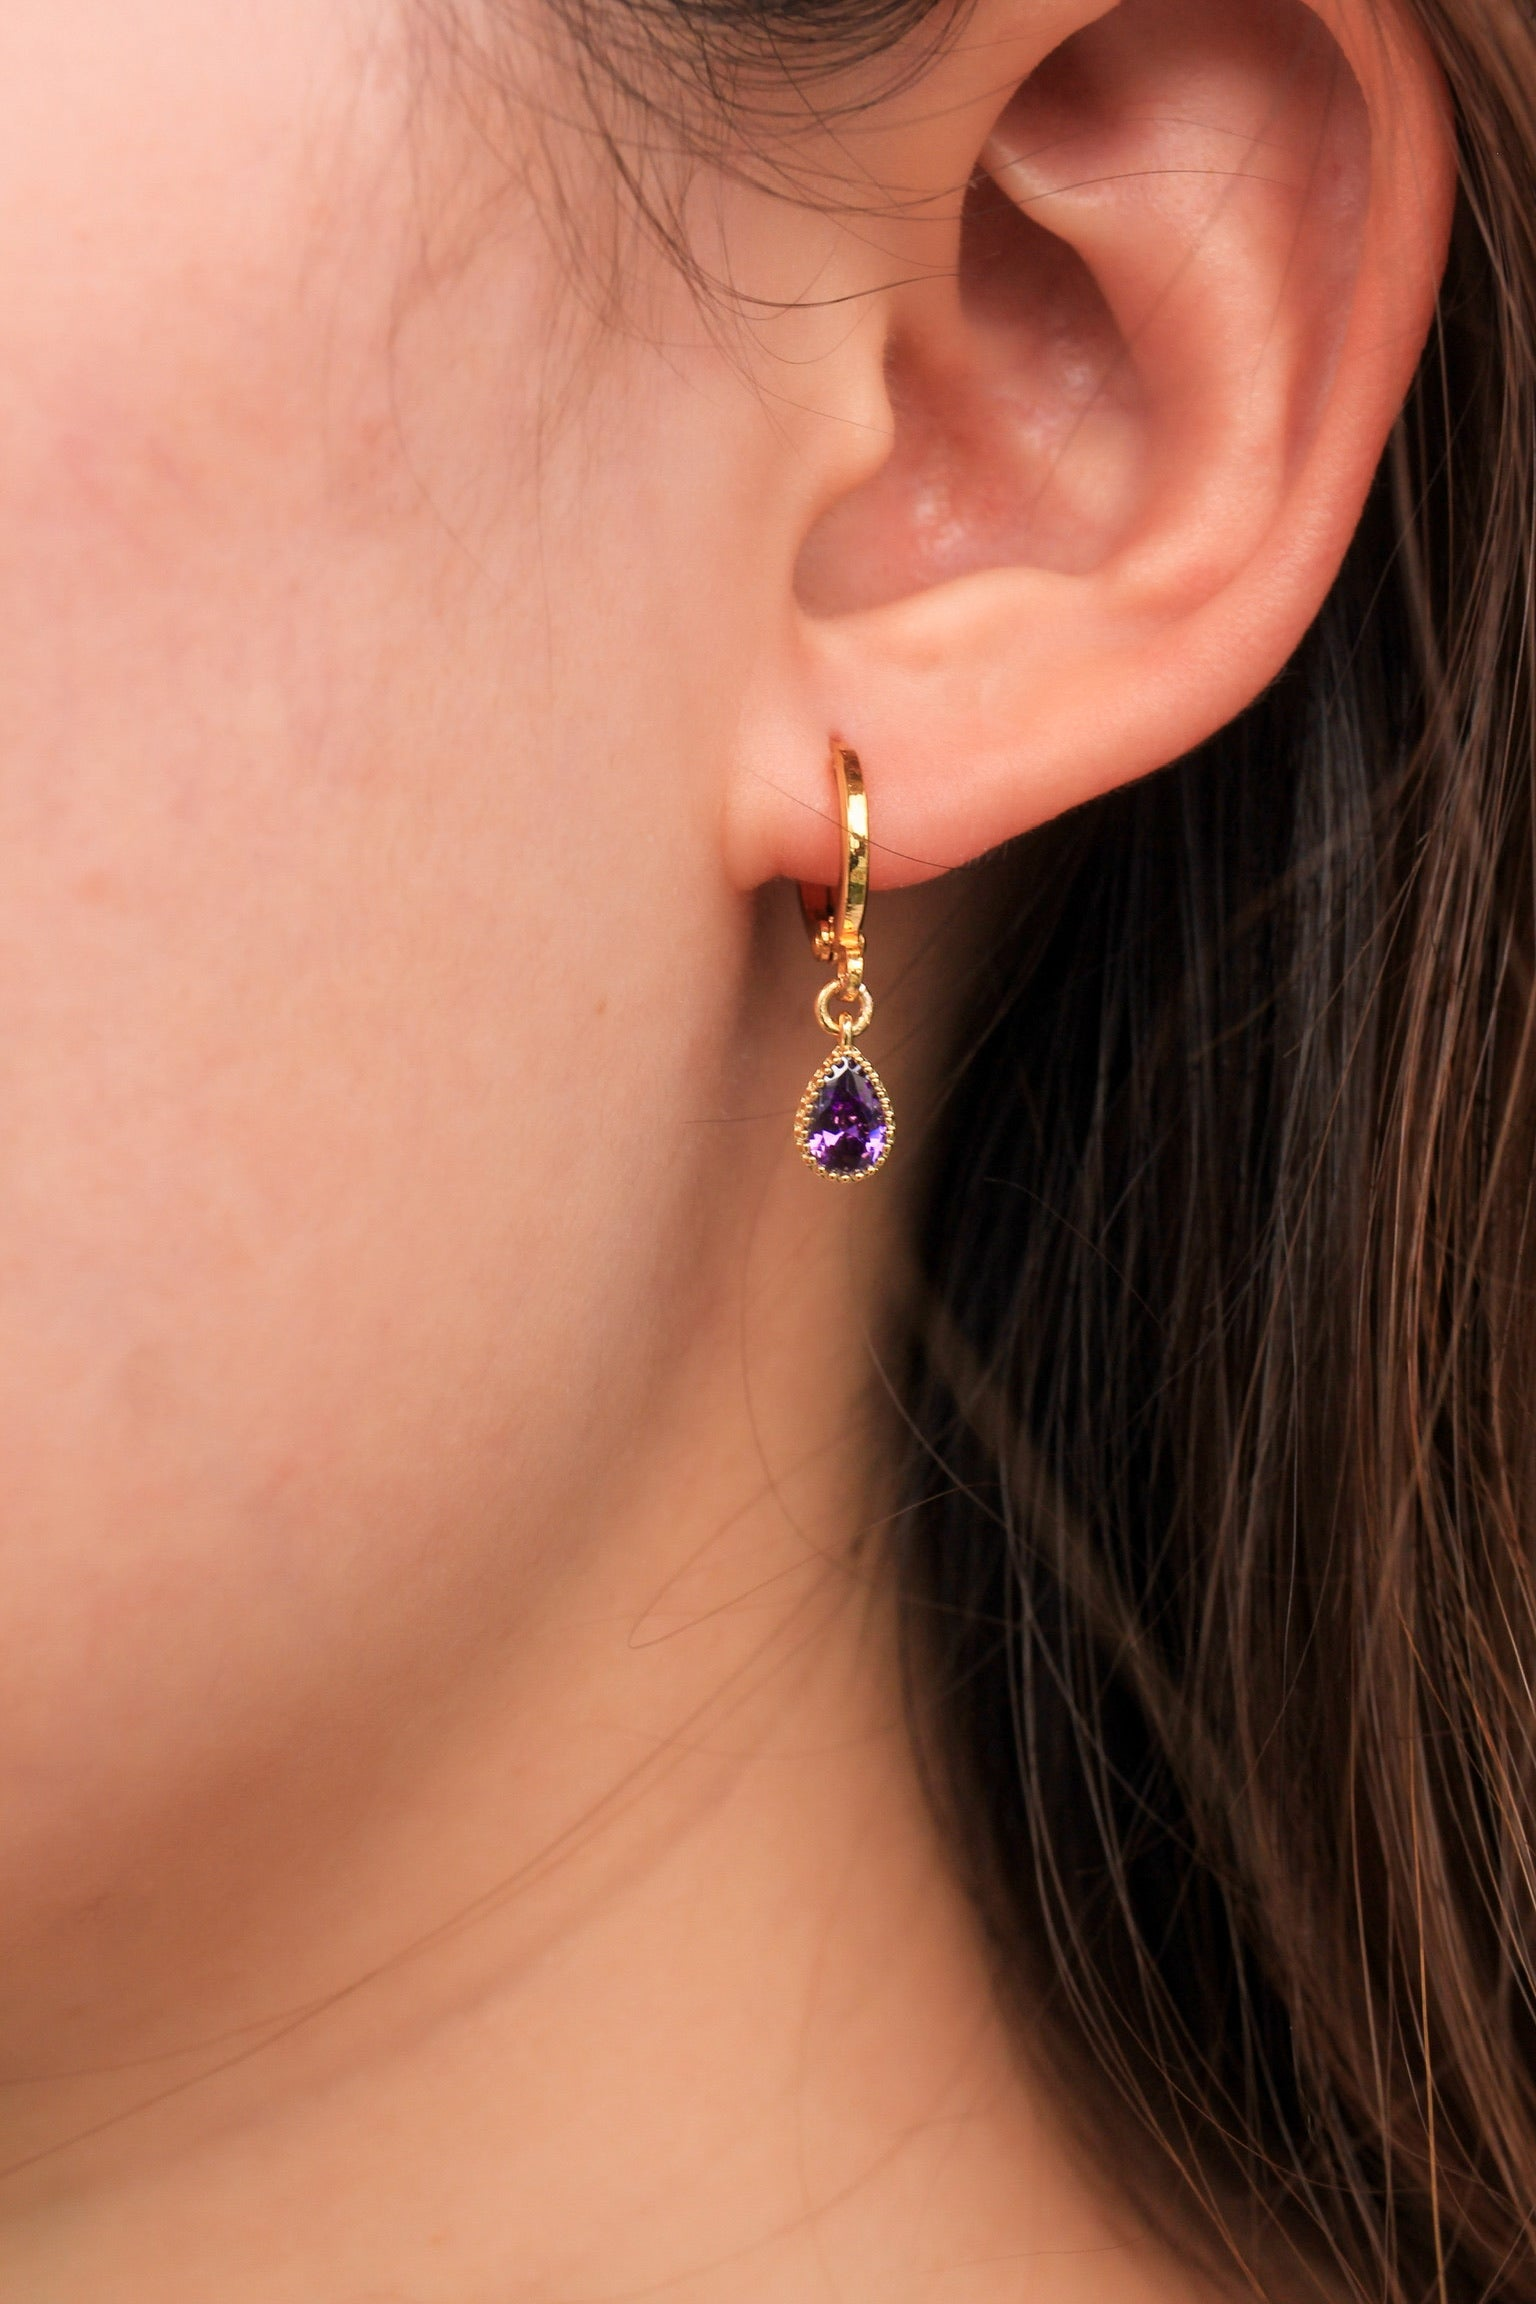 Personalised Earrings - Alexandrite